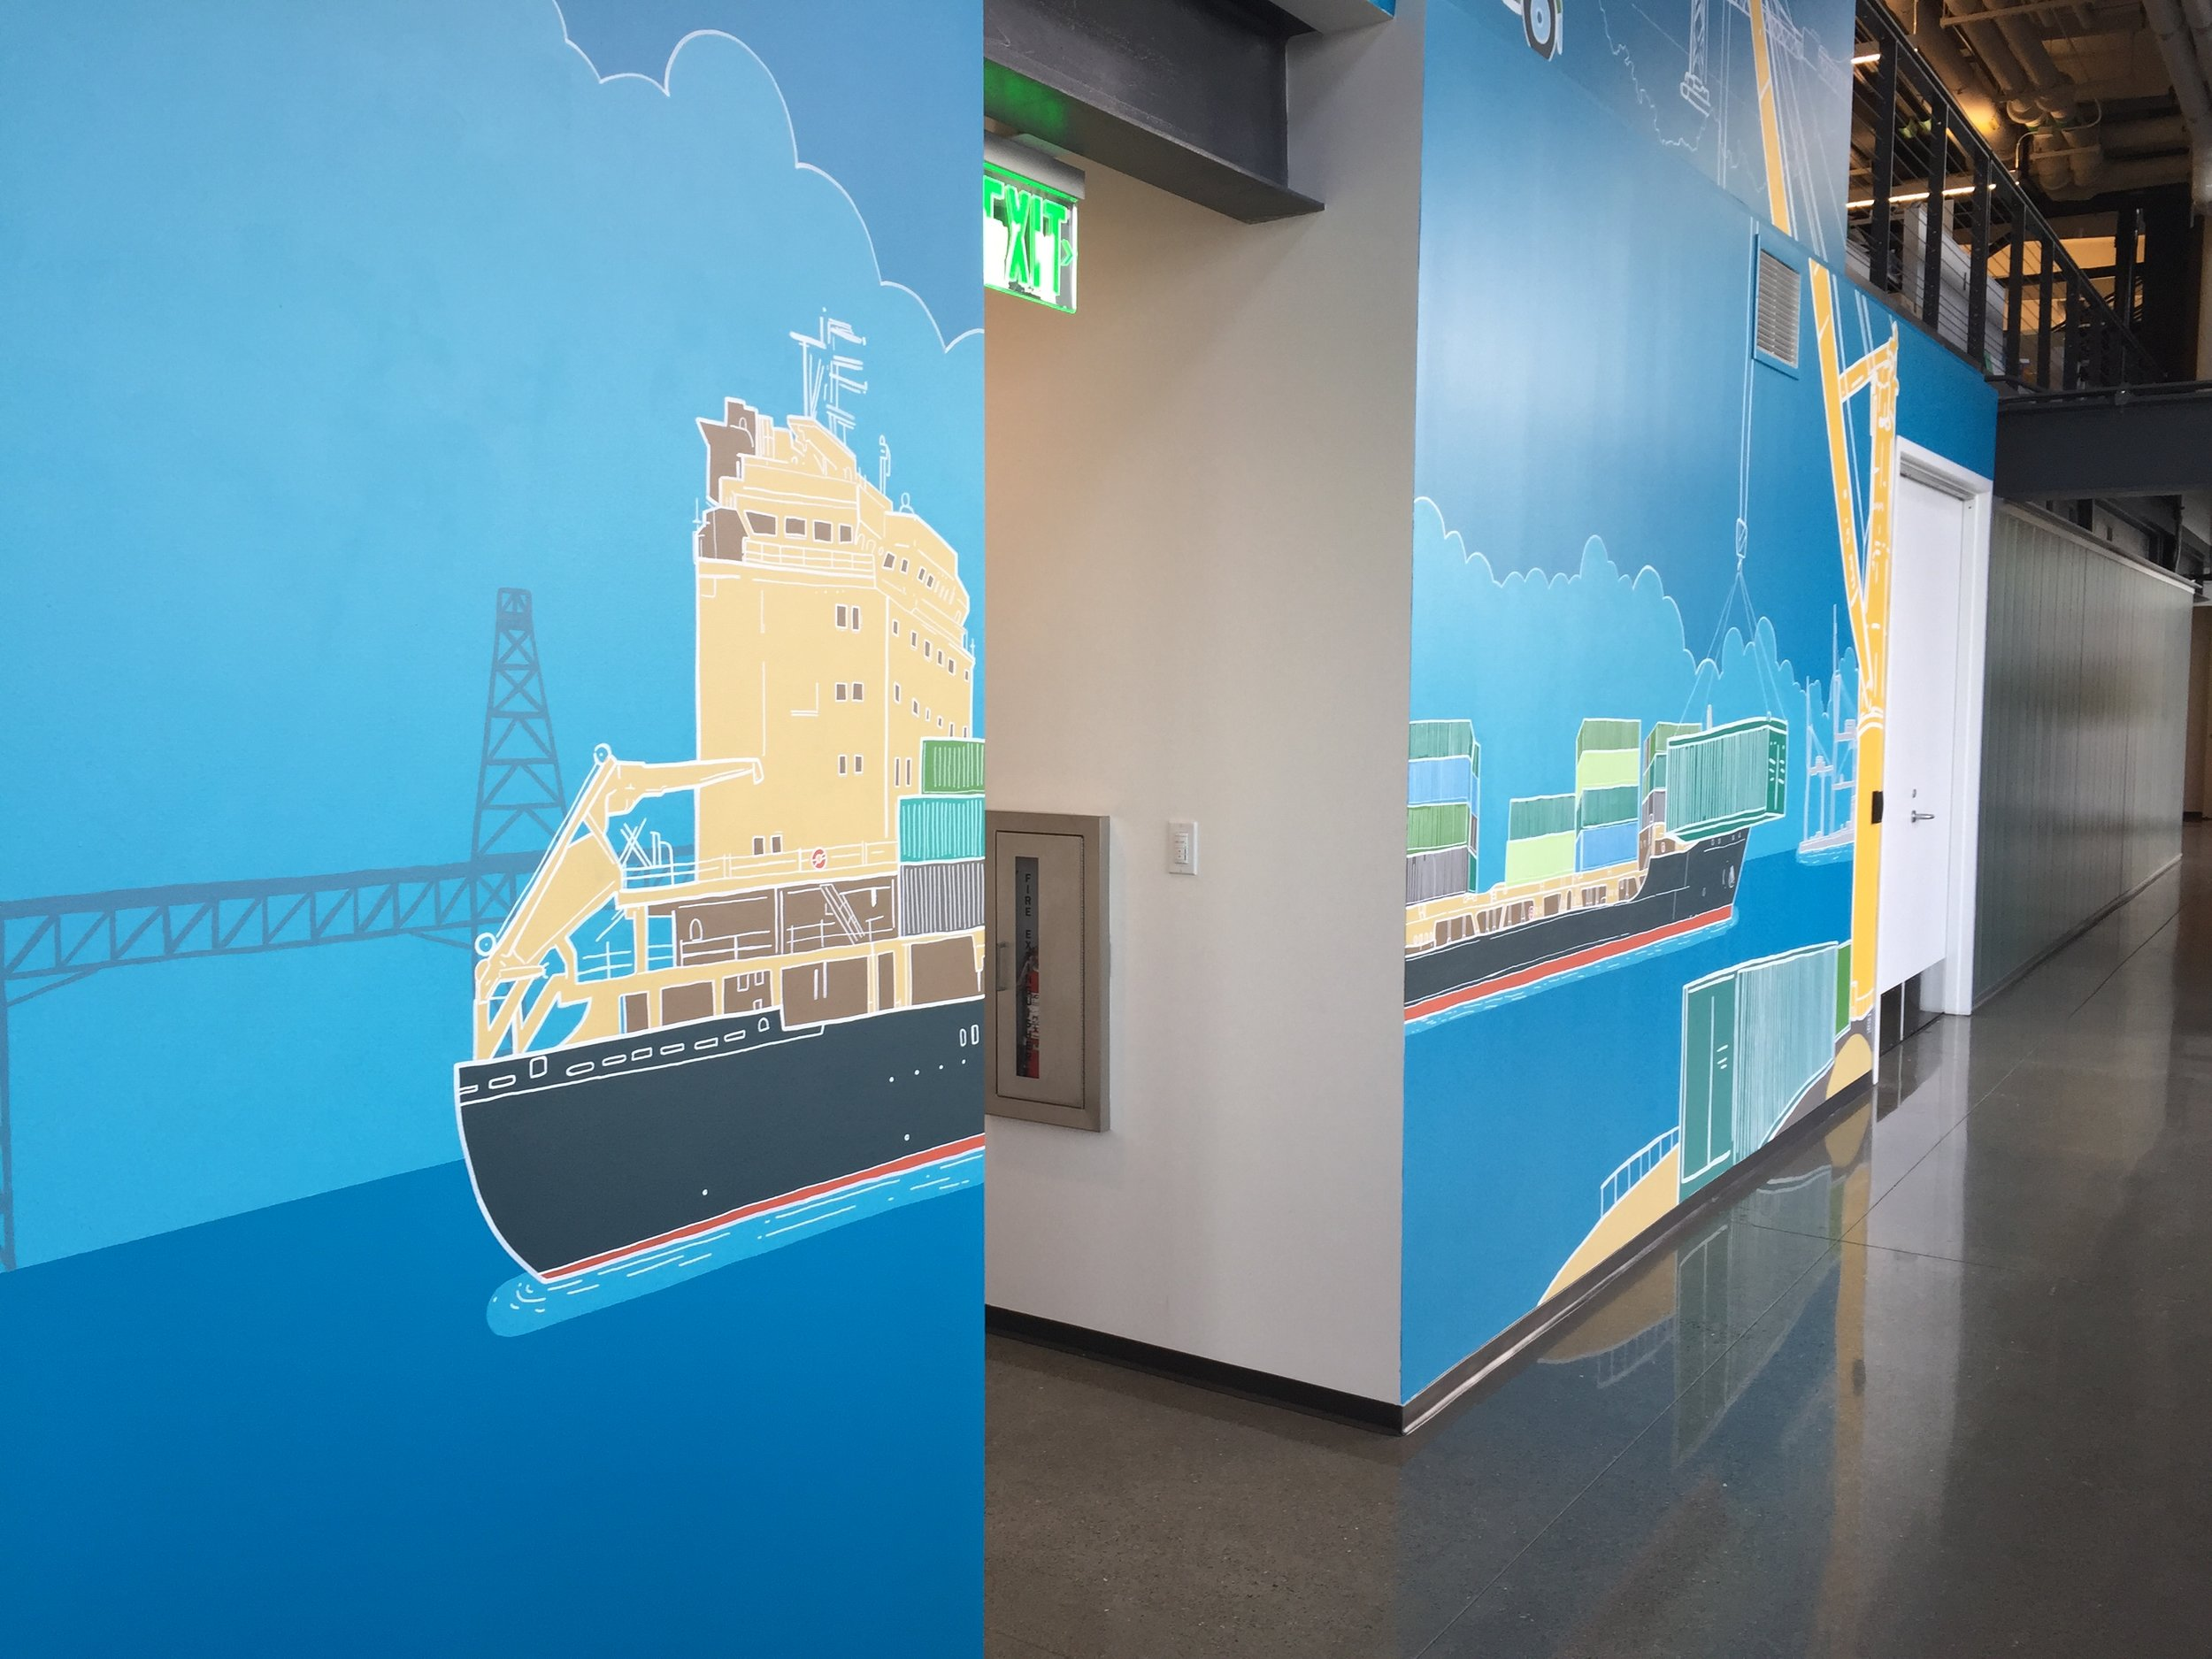 Office-commercial-mural-san-francisco-prologis-wall-and-wall-mural-company.jpeg